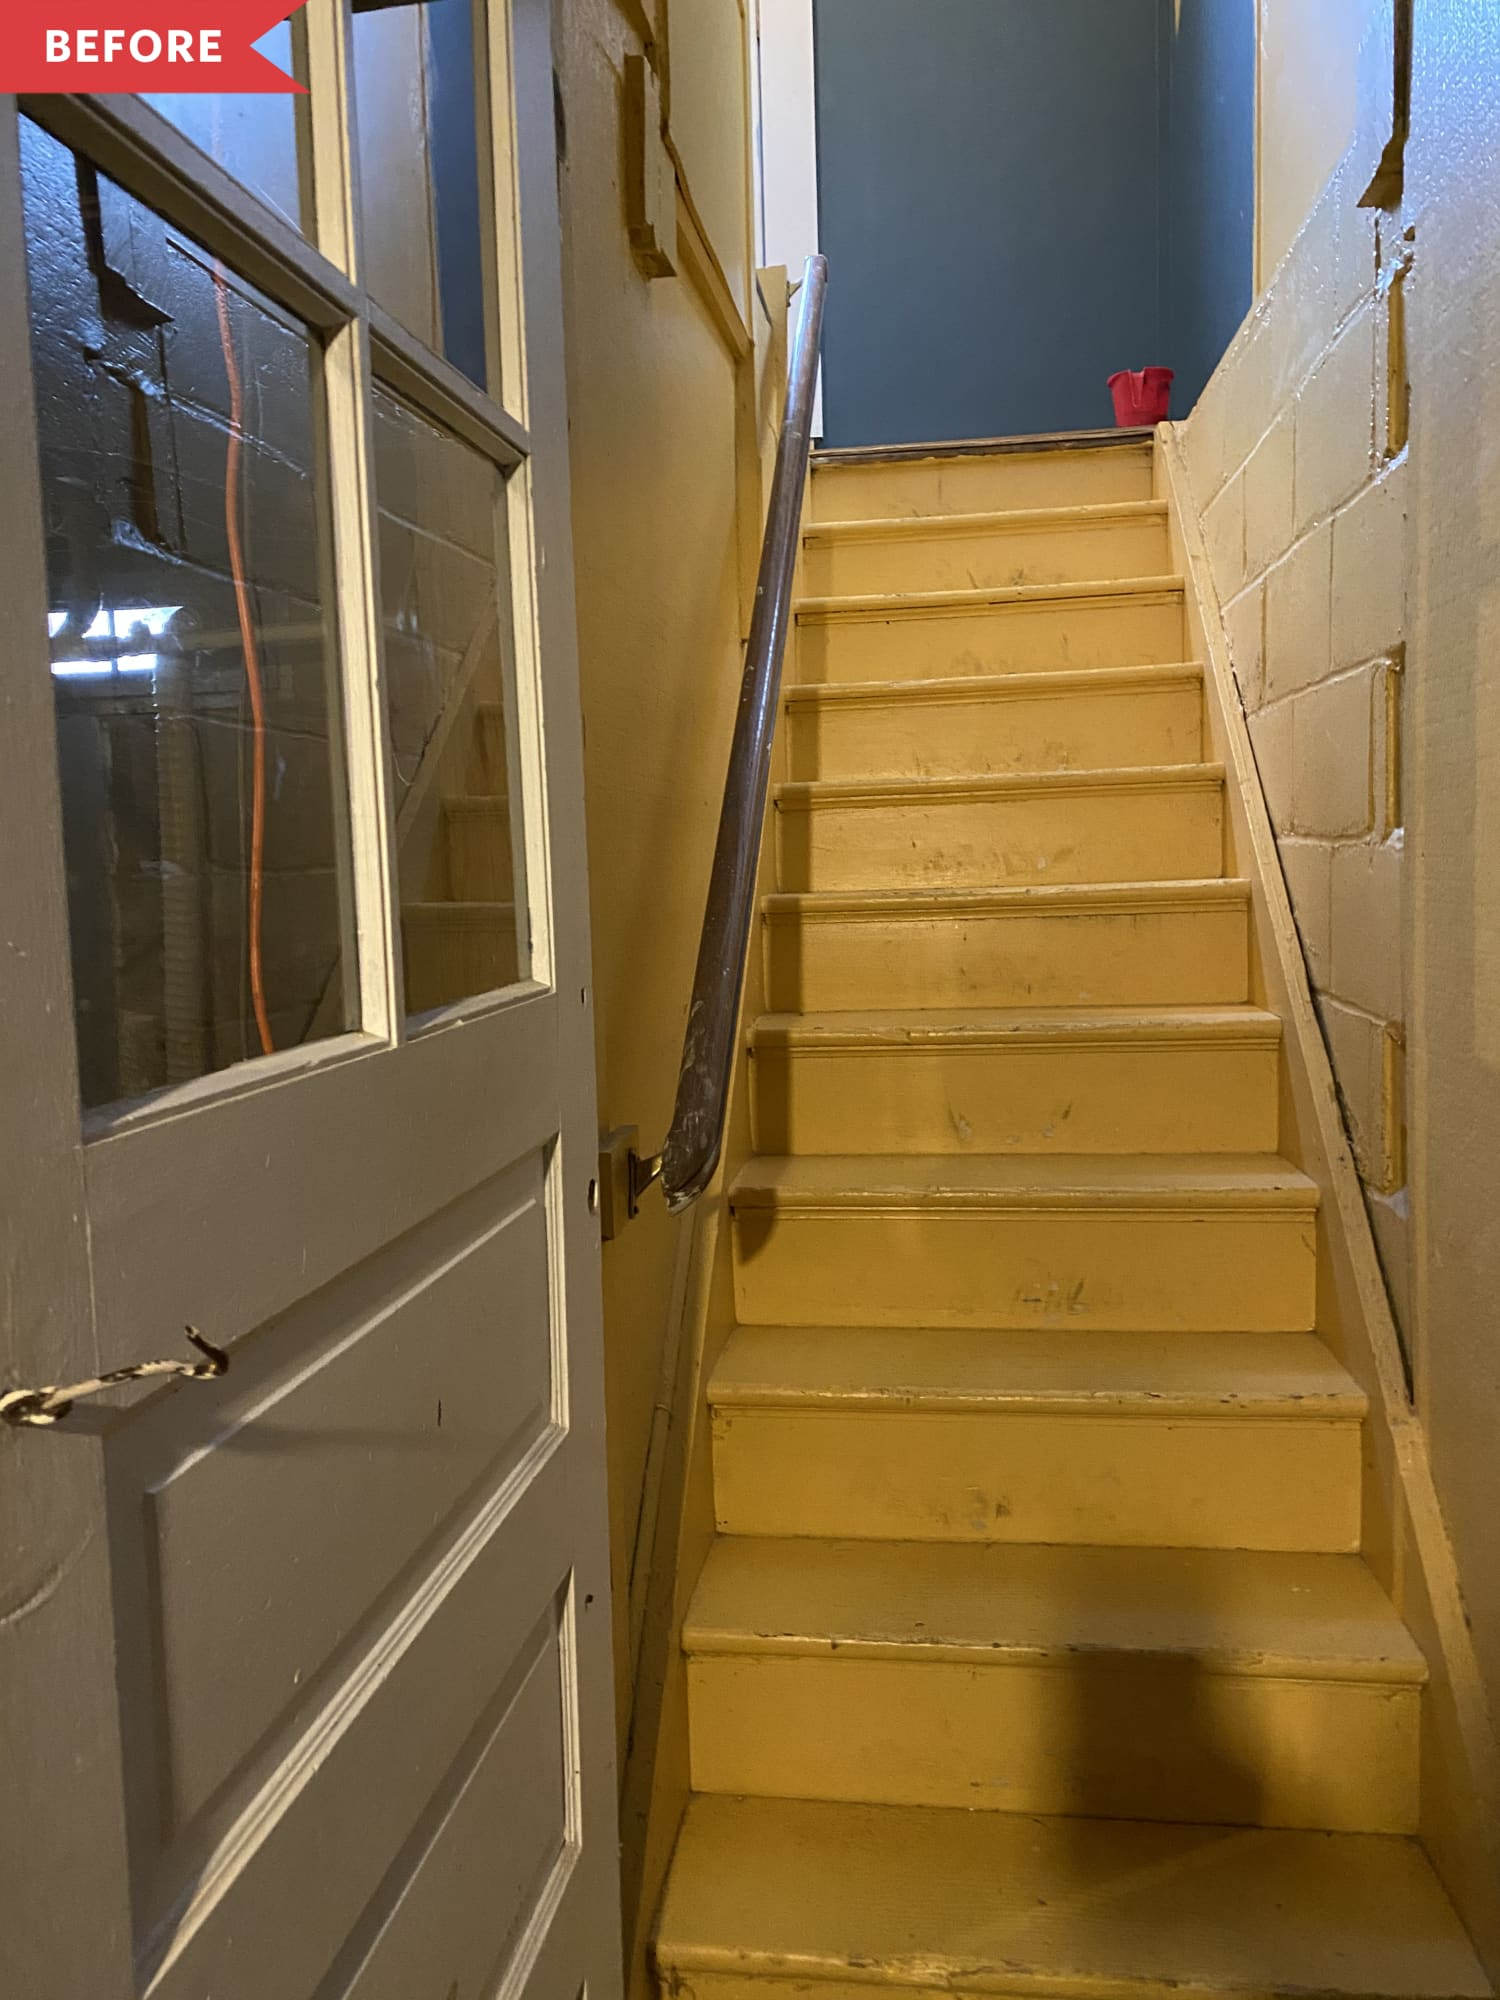 Before and After: A $0 Hack Gives These Sad Stairs a Colorful Boho-Style Upgrade